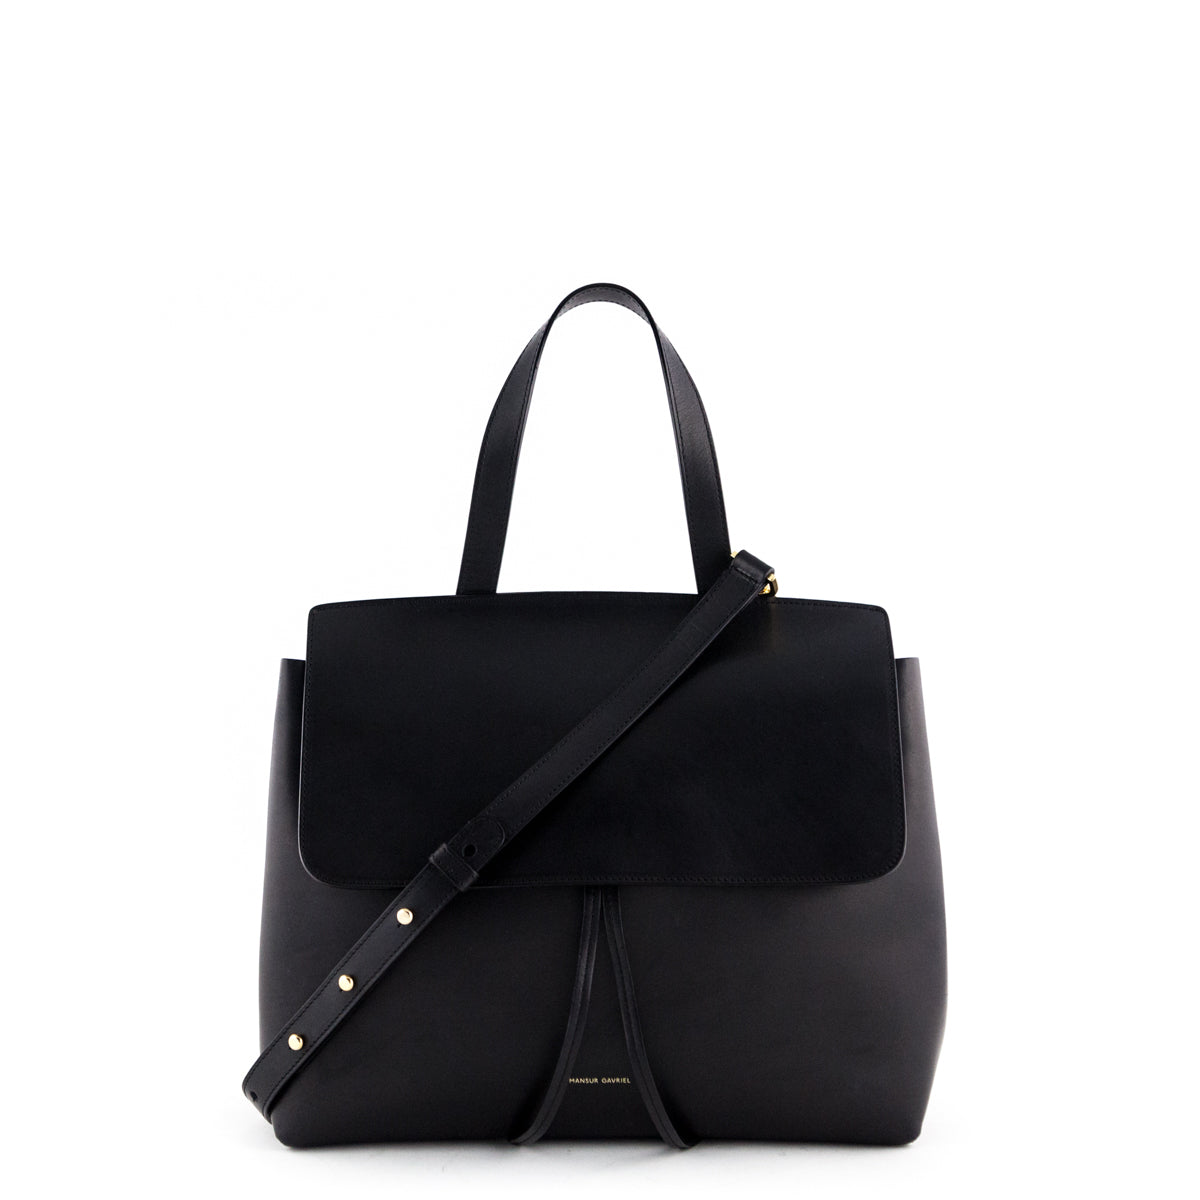 a92a8358 Mansur Gavriel Black Medium Lady Bag - LOVE that BAG - Preowned Authentic Designer  Handbags ...